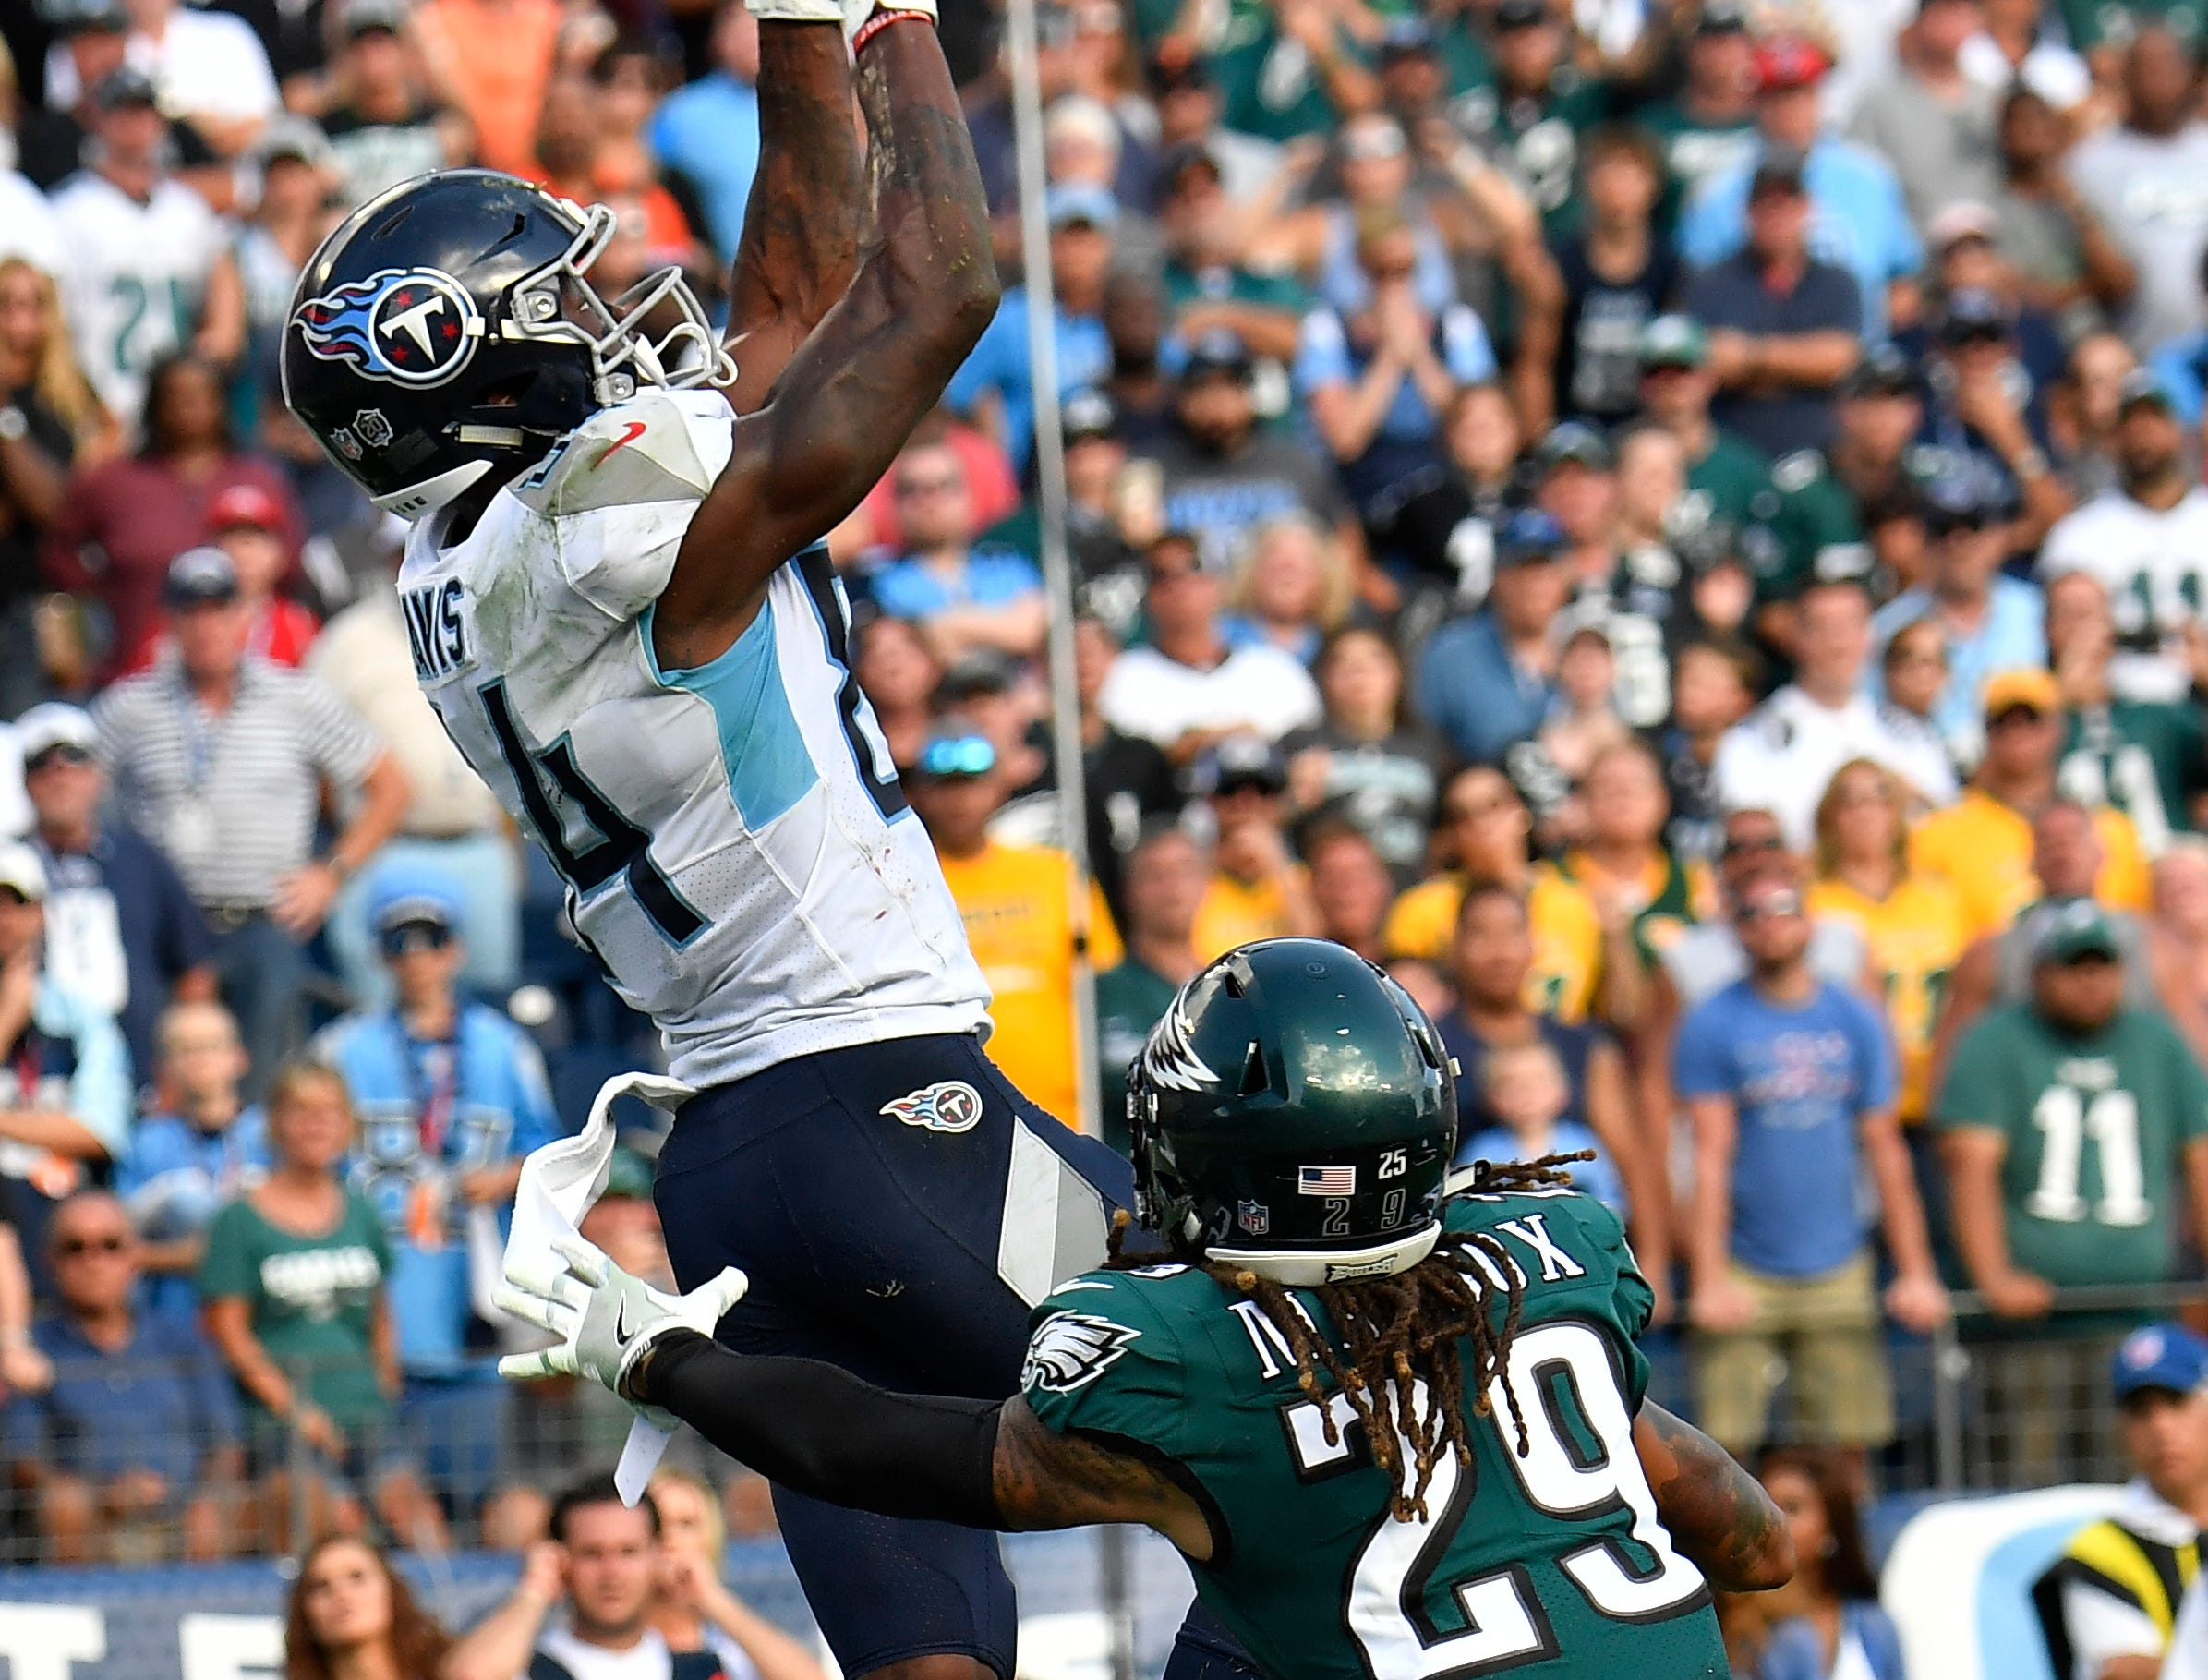 Titans wide receiver Corey Davis (84) makes the game-winning touchdown over Eagles cornerback Avonte Maddox (29) in overtime at Nissan Stadium Sunday, Sept. 30, 2018, in Nashville, Tenn.